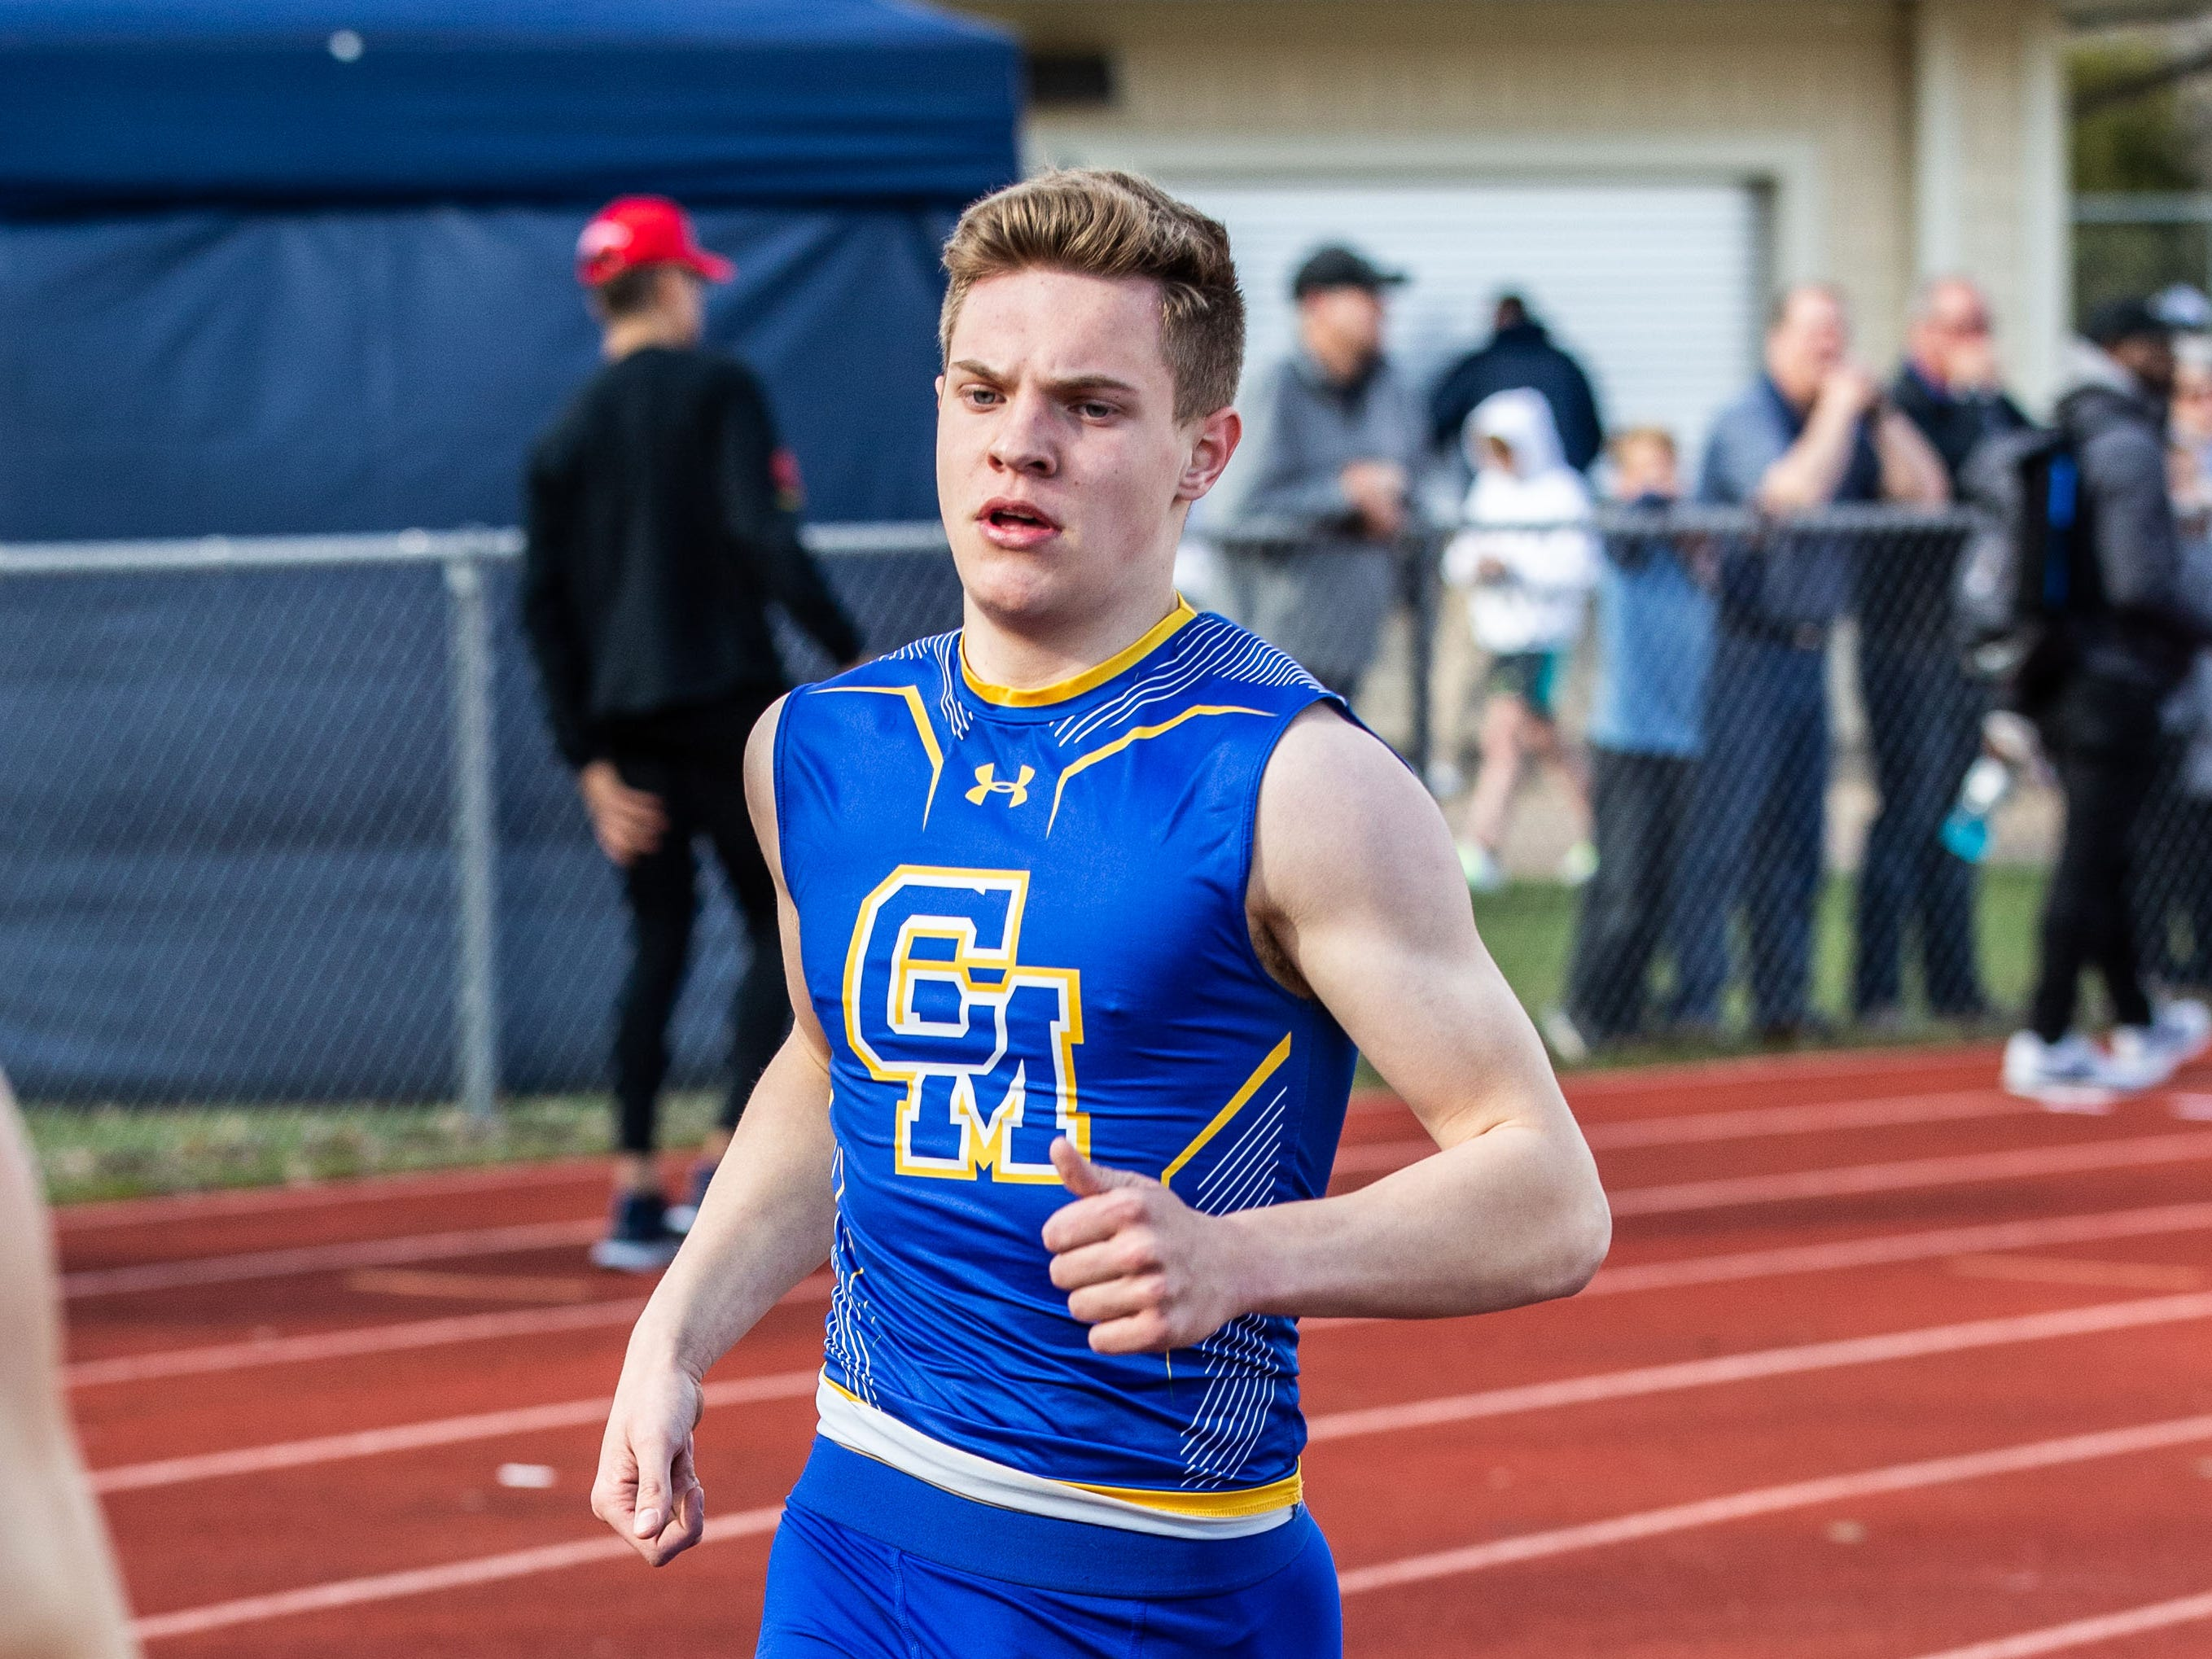 Catholic Memorial's Joe Bisswurm competes in the 1600 meter run during the Mike Gain 50th Annual Spartan Invitational at Brookfield East on Tuesday, April 9, 2019.